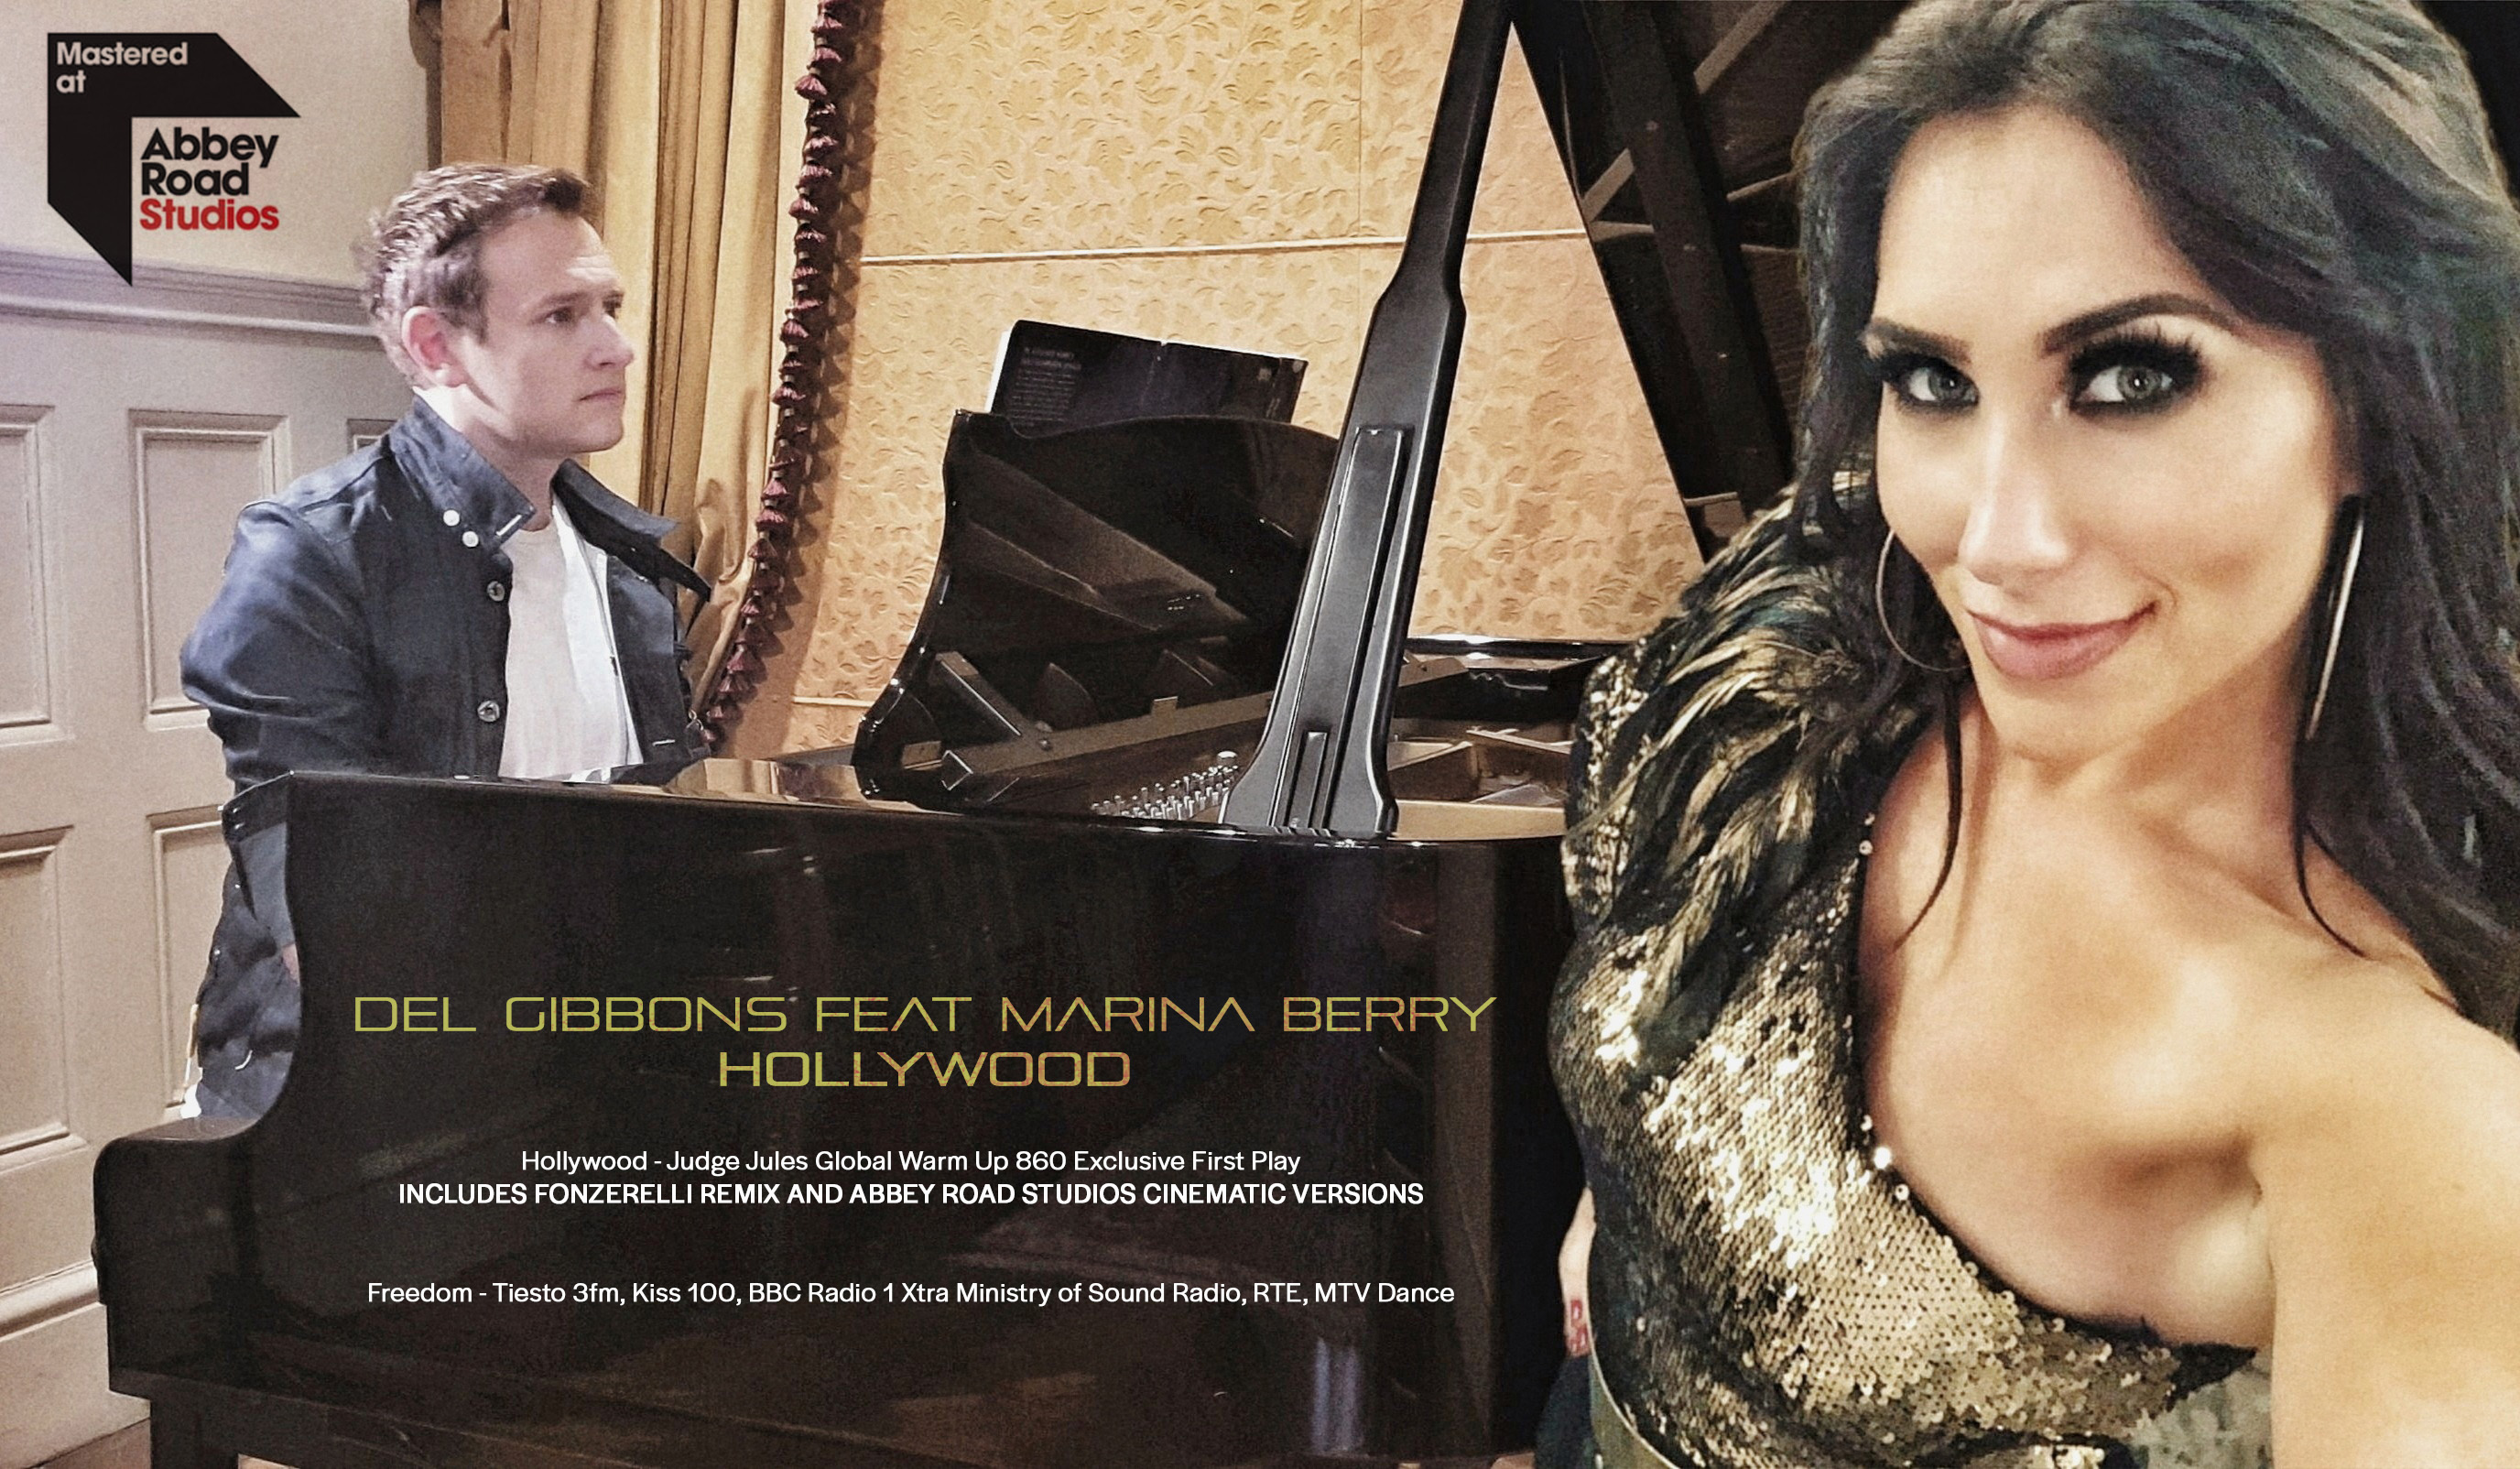 Del Gibbons Feat Marina Berry  Hollywood